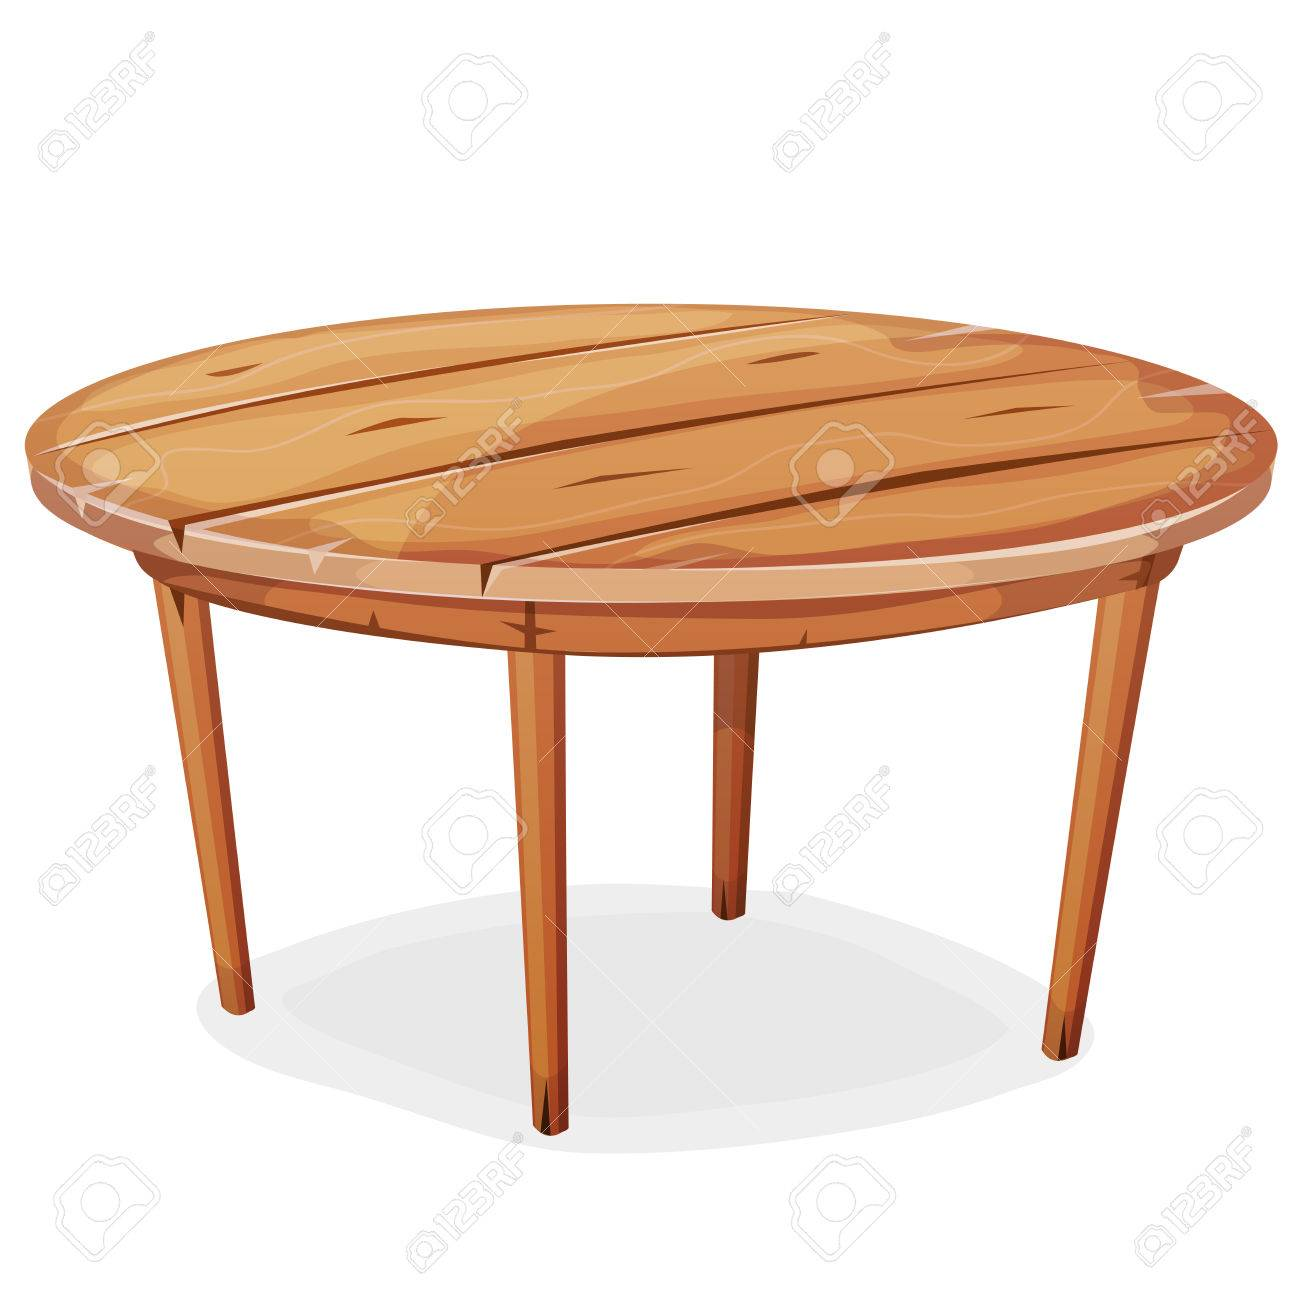 Illustration Of A Cartoon Funny Rounded Wooden Kitchen Or Garden ...